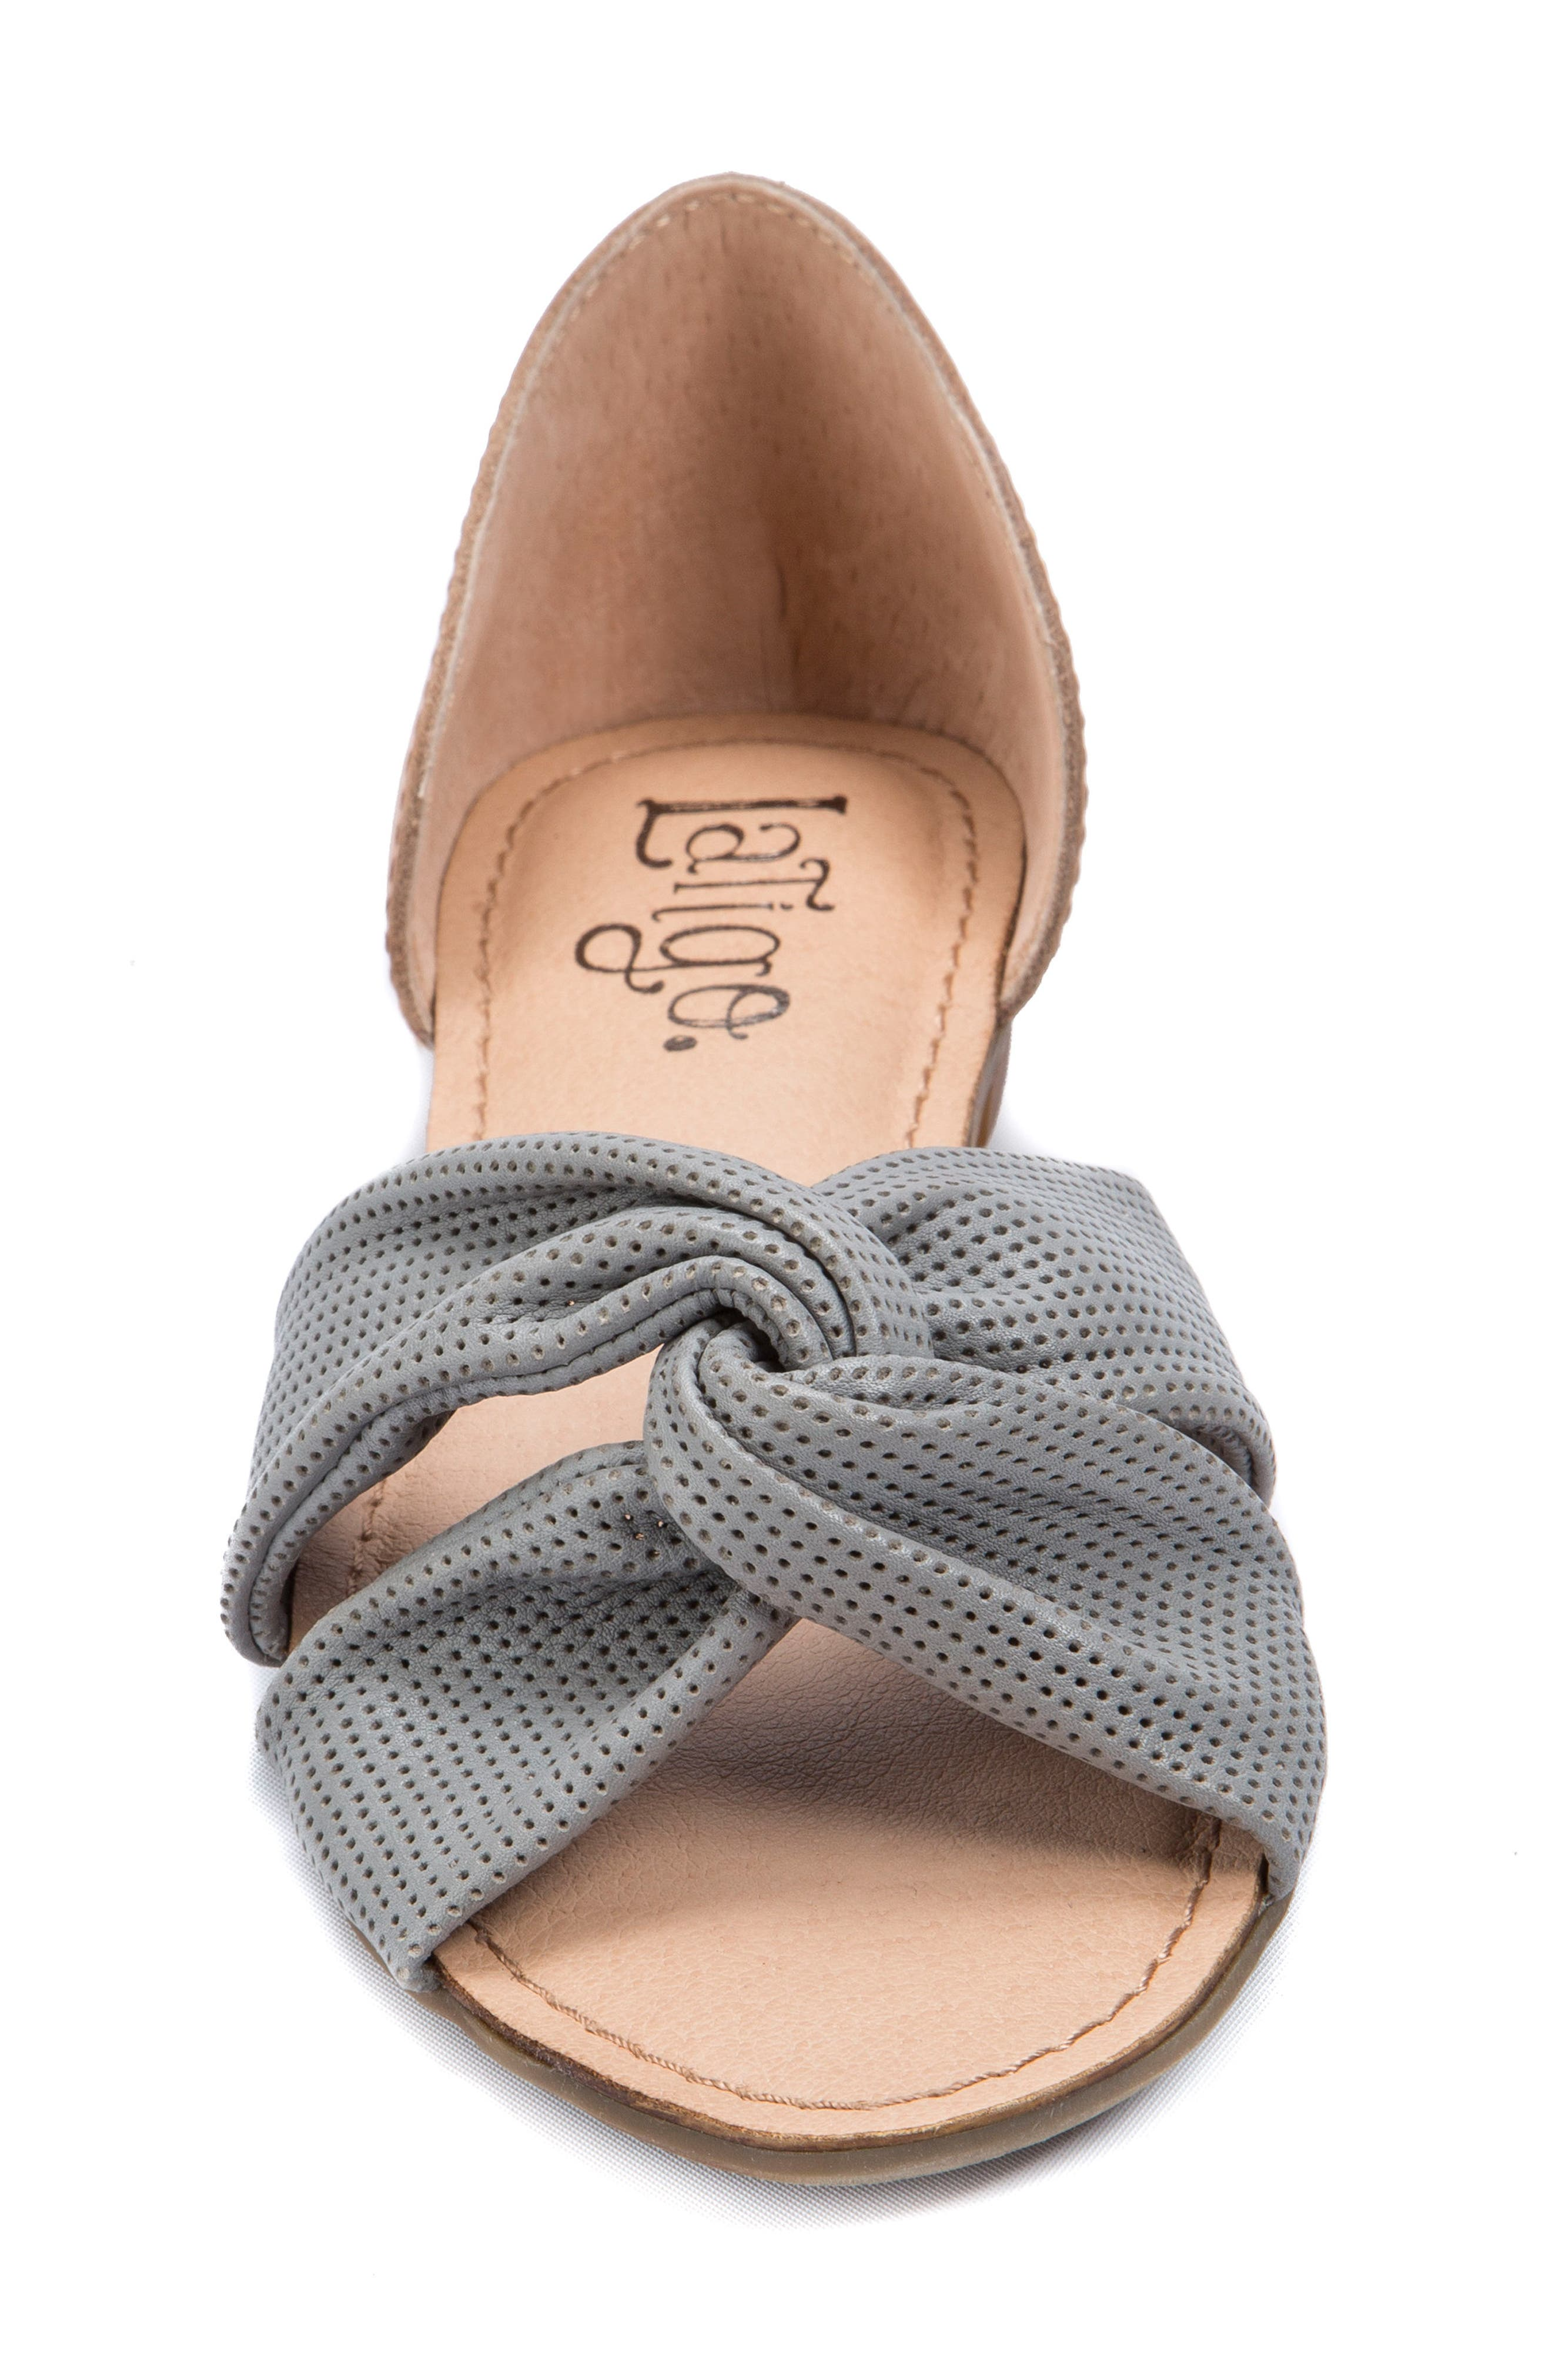 Darcy Perforated Flat Sandal,                             Alternate thumbnail 4, color,                             Mist Grey Leather